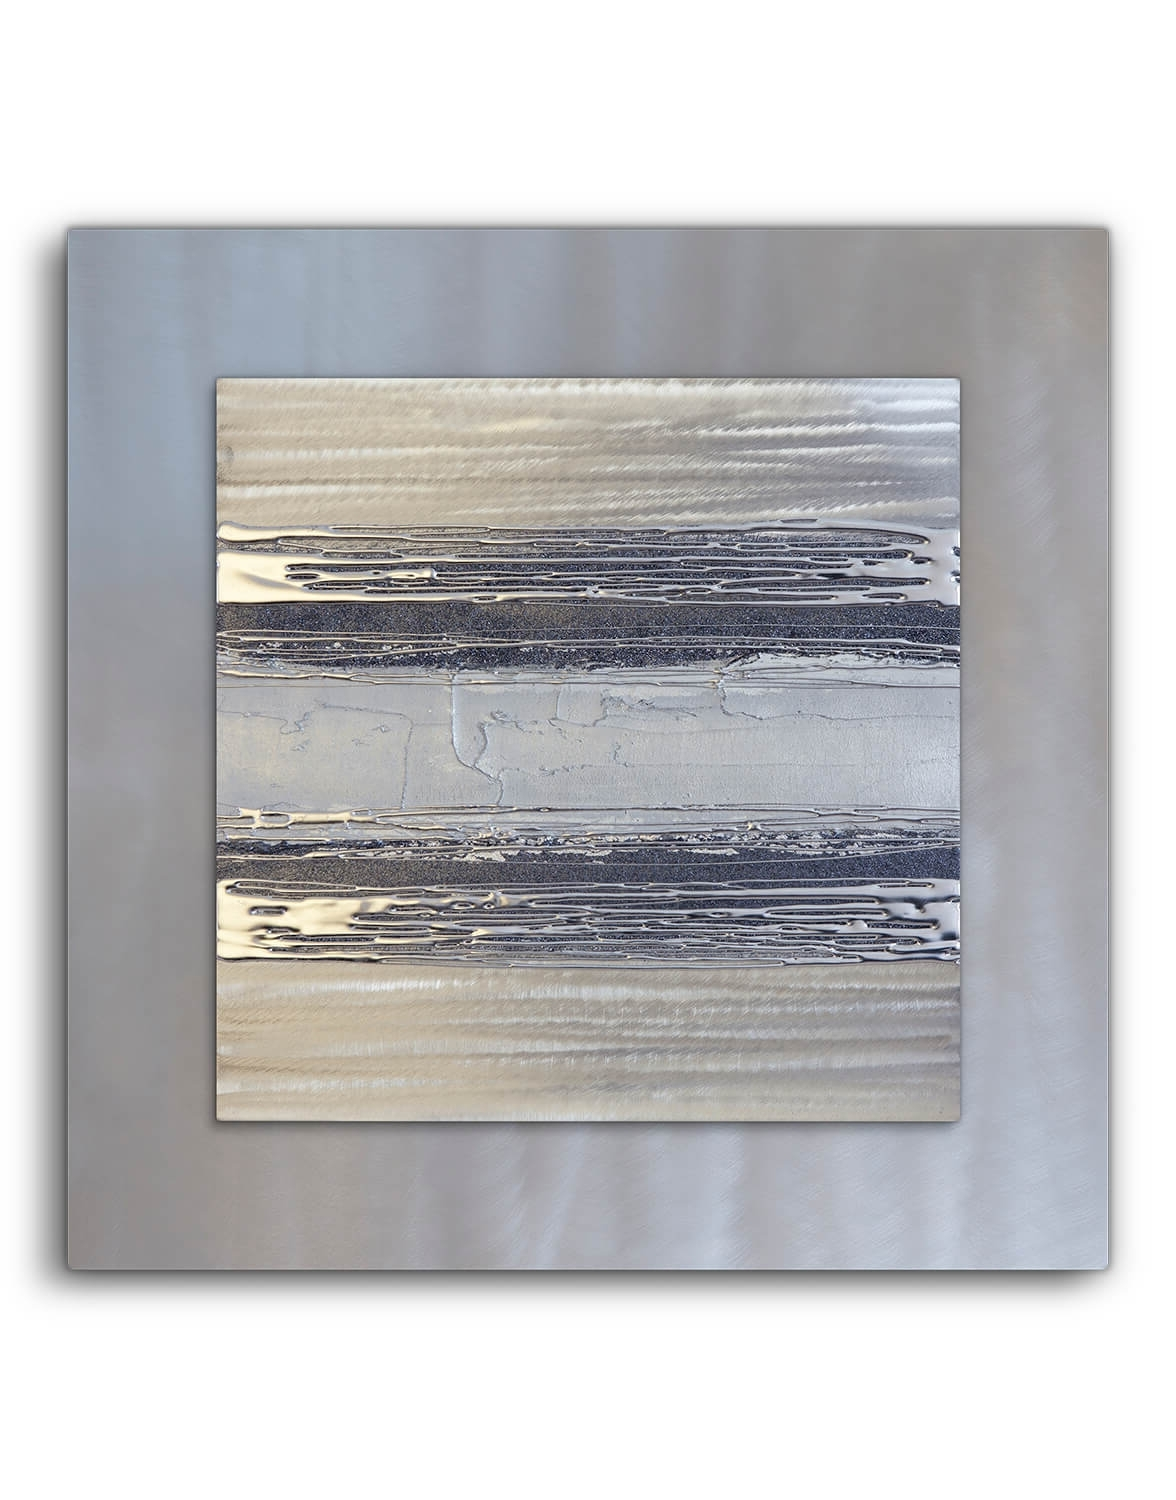 Silver Wall Art Throughout Popular Contemporary Square Silver Grey Ii – Silver Wall Art, Contemporary (View 8 of 15)